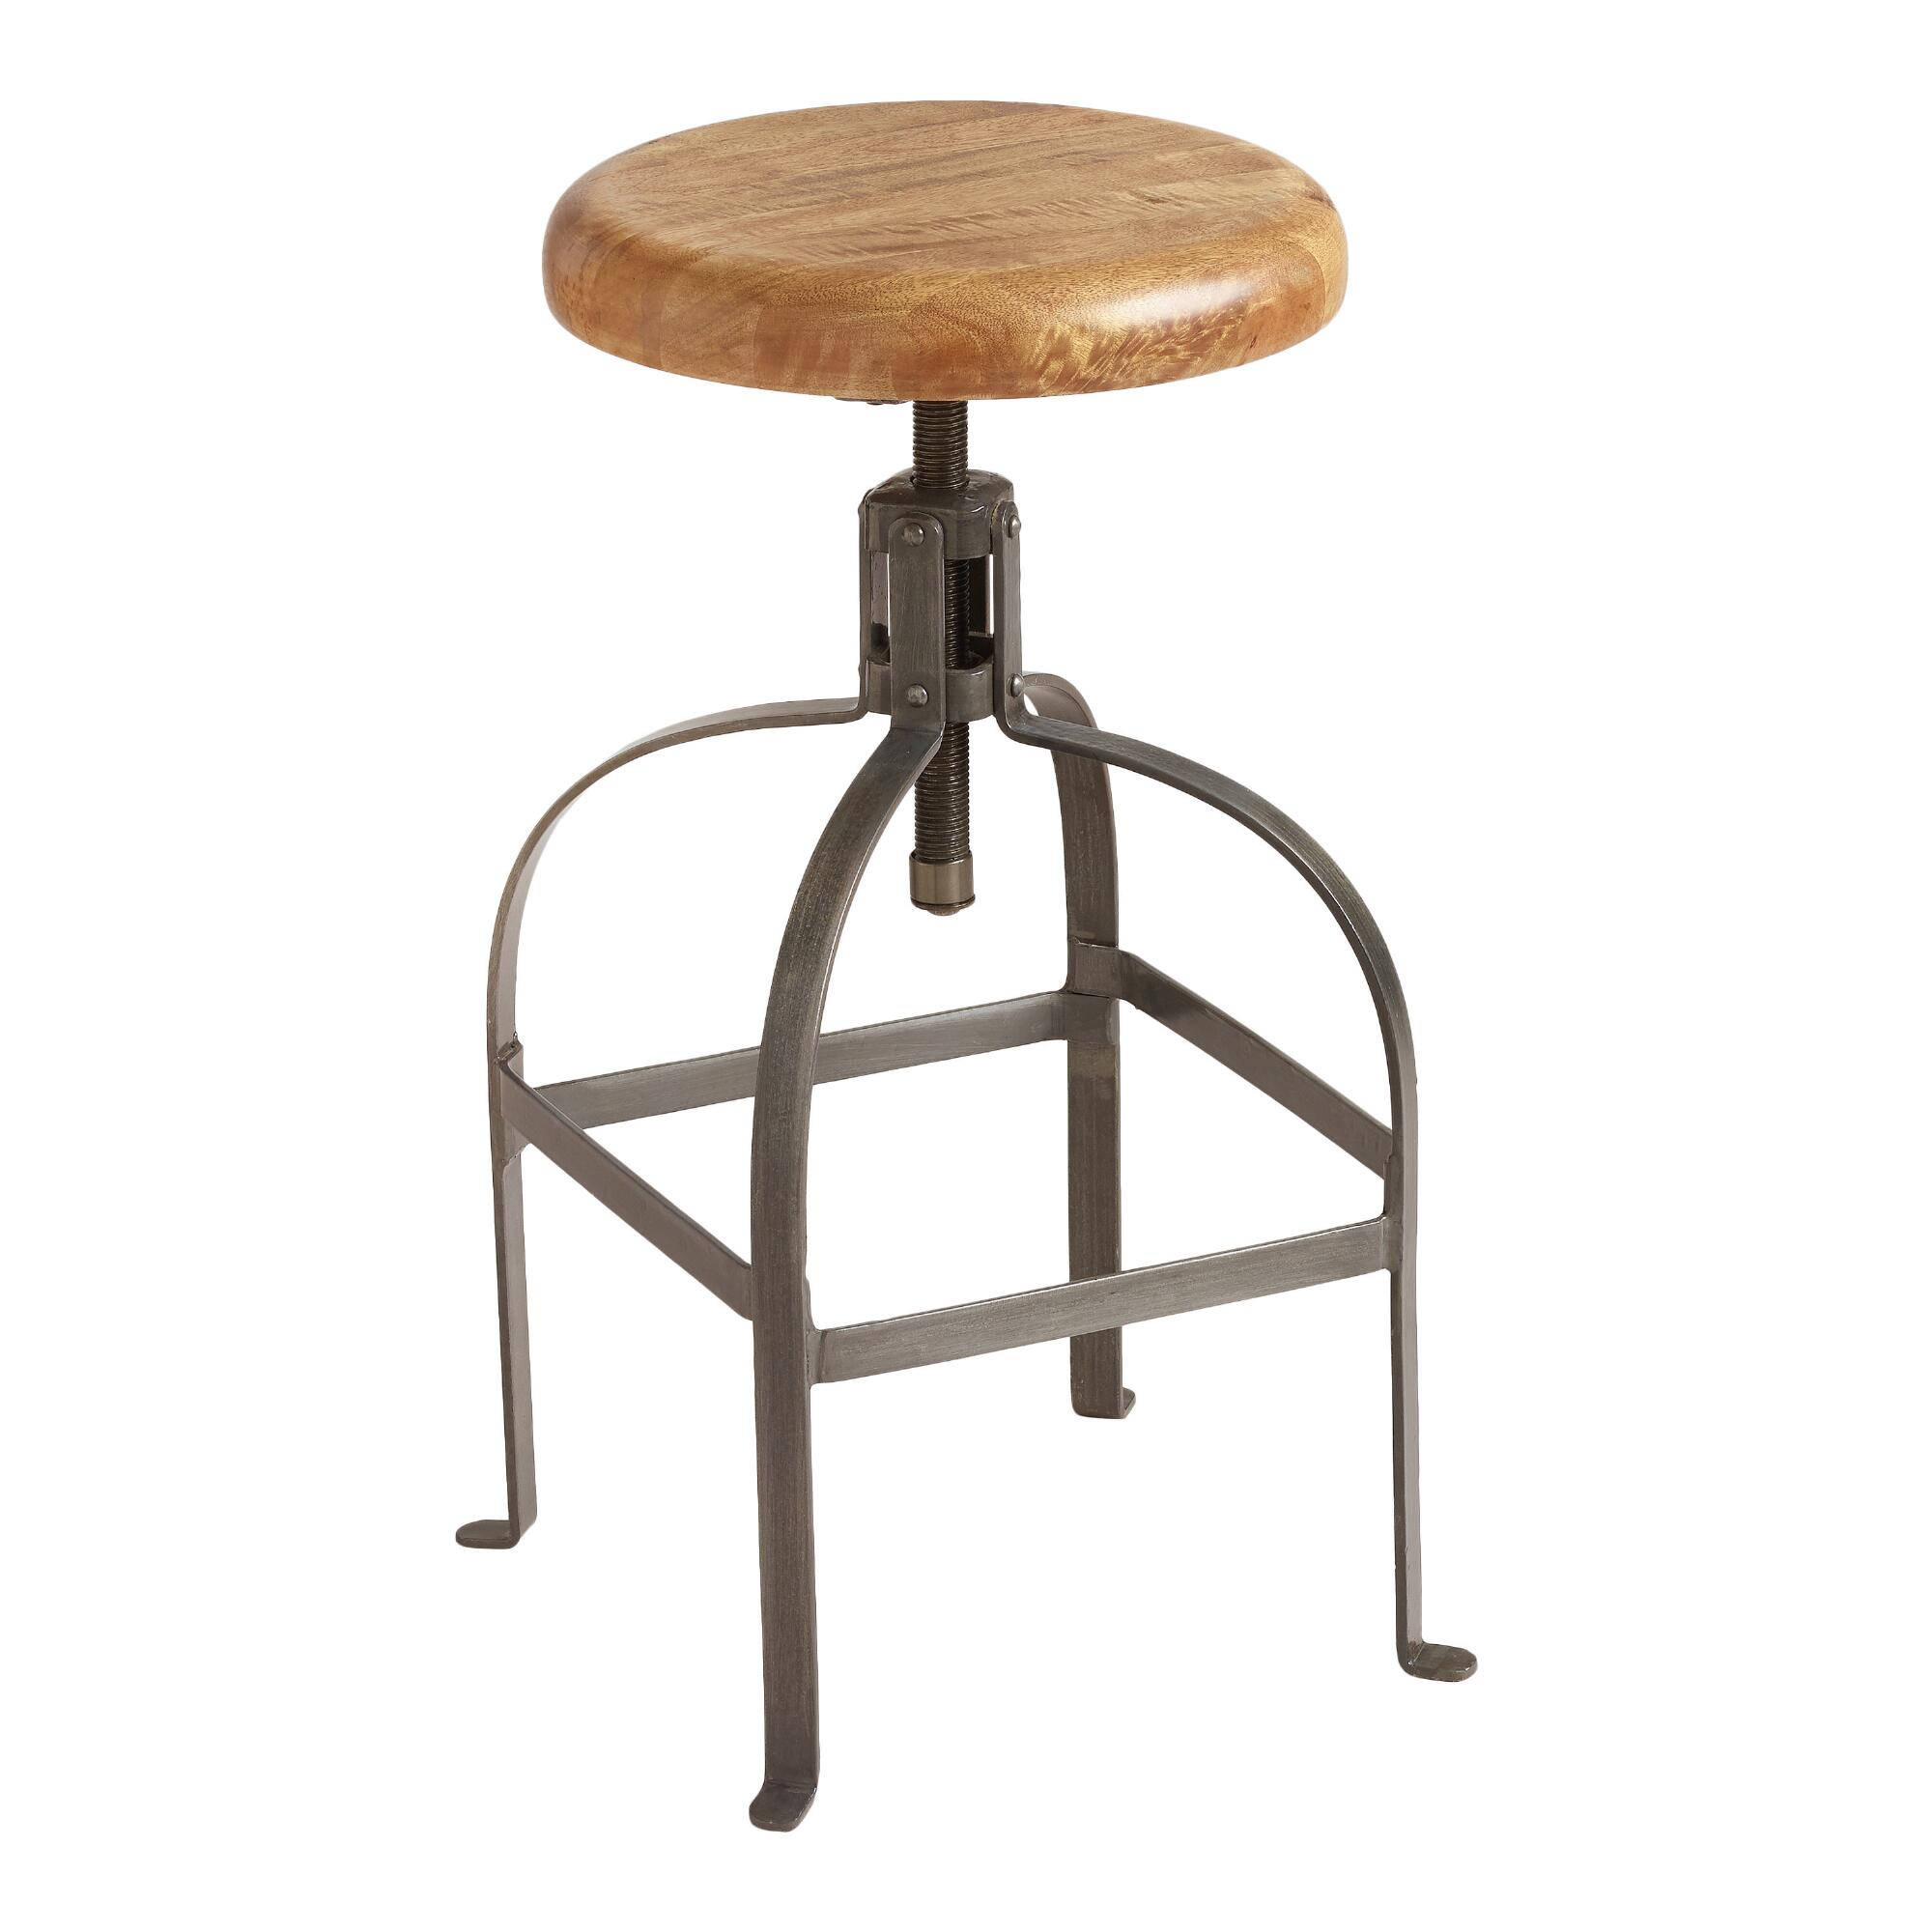 Wood Stools Product ~ Adjustable round wood and metal stool world market